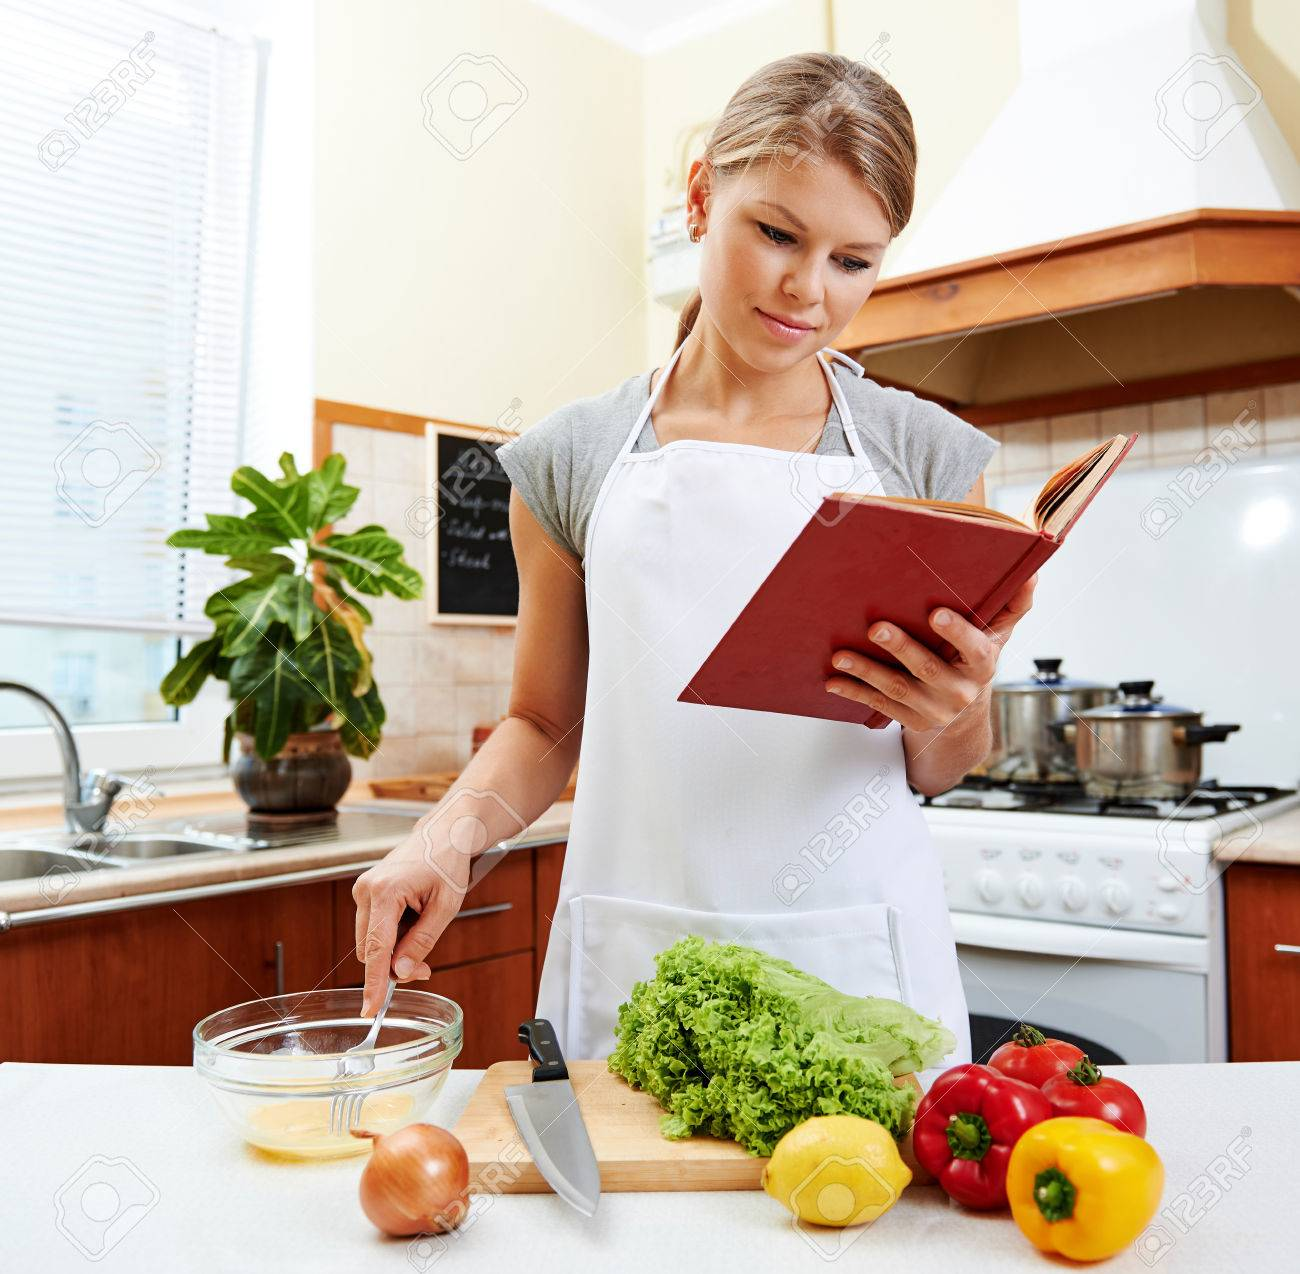 White apron food - Concentrated Female Reading Recipe Book And Cooking Meal Young Housewife Wearing White Apron Preparing Vegetable